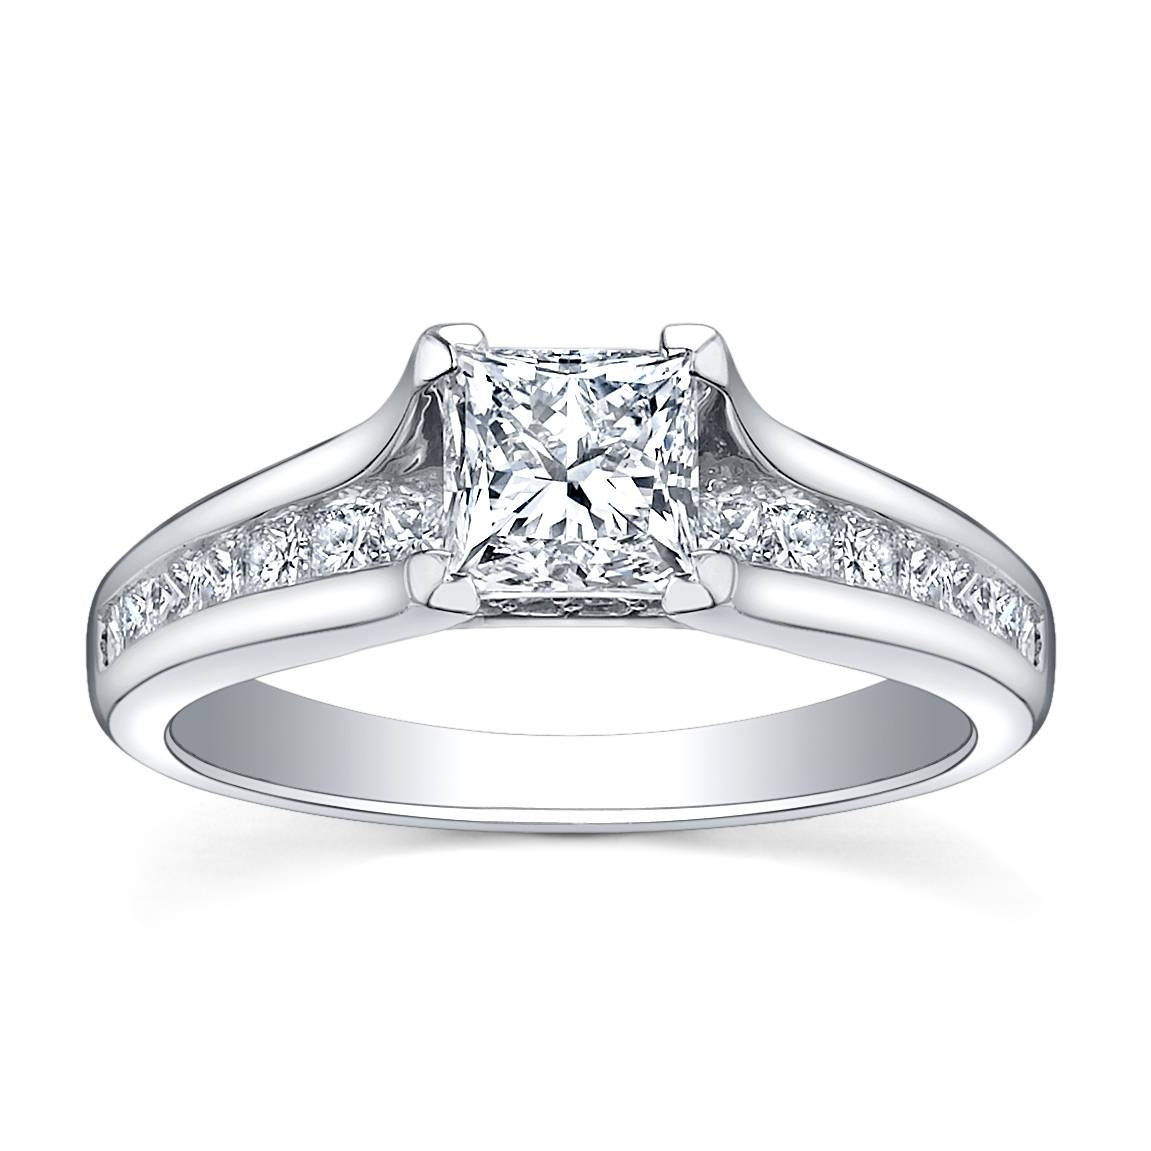 Fallers Wedding Jewellery 18K White Gold Diamond Engagement Ring In White Gold And Diamond Engagement Rings (View 8 of 15)